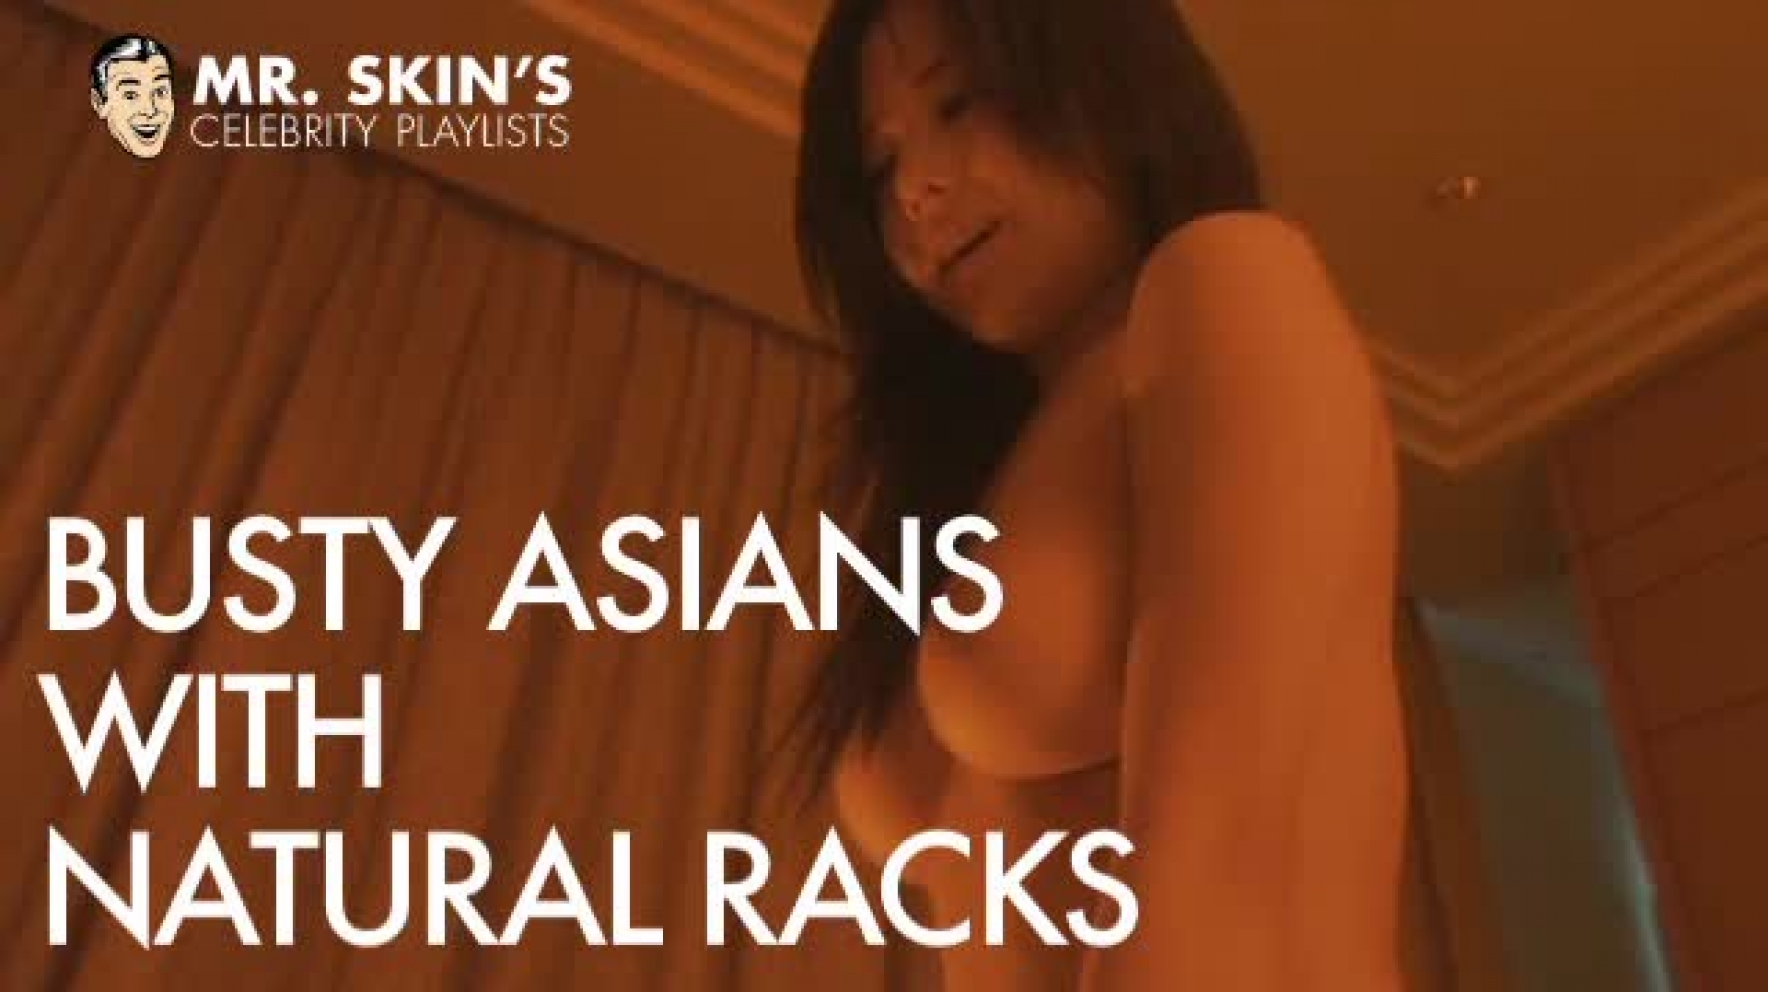 Busty Asian Celebs With Natural